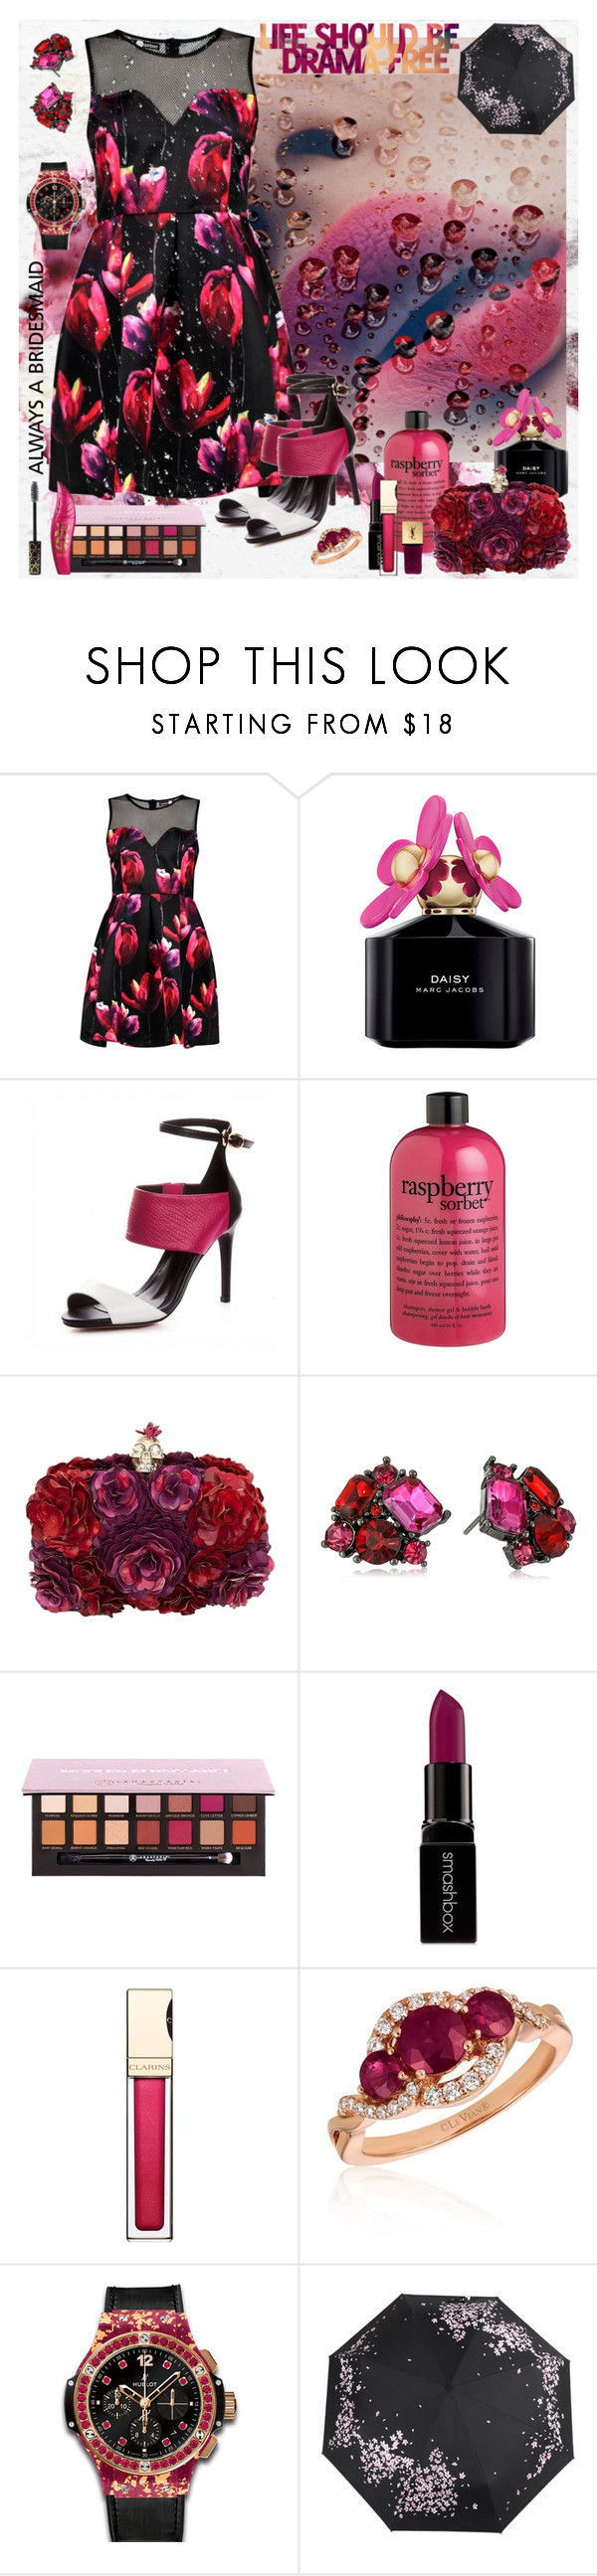 """""""Drama free"""" by julyralewis ❤ liked on Polyvore featuring Boohoo, Marc Jacobs, philosophy, Alexander McQueen, Betsey Johnson, Anastasia Beverly Hills, Smashbox, Clarins, LE VIAN and Hublot"""